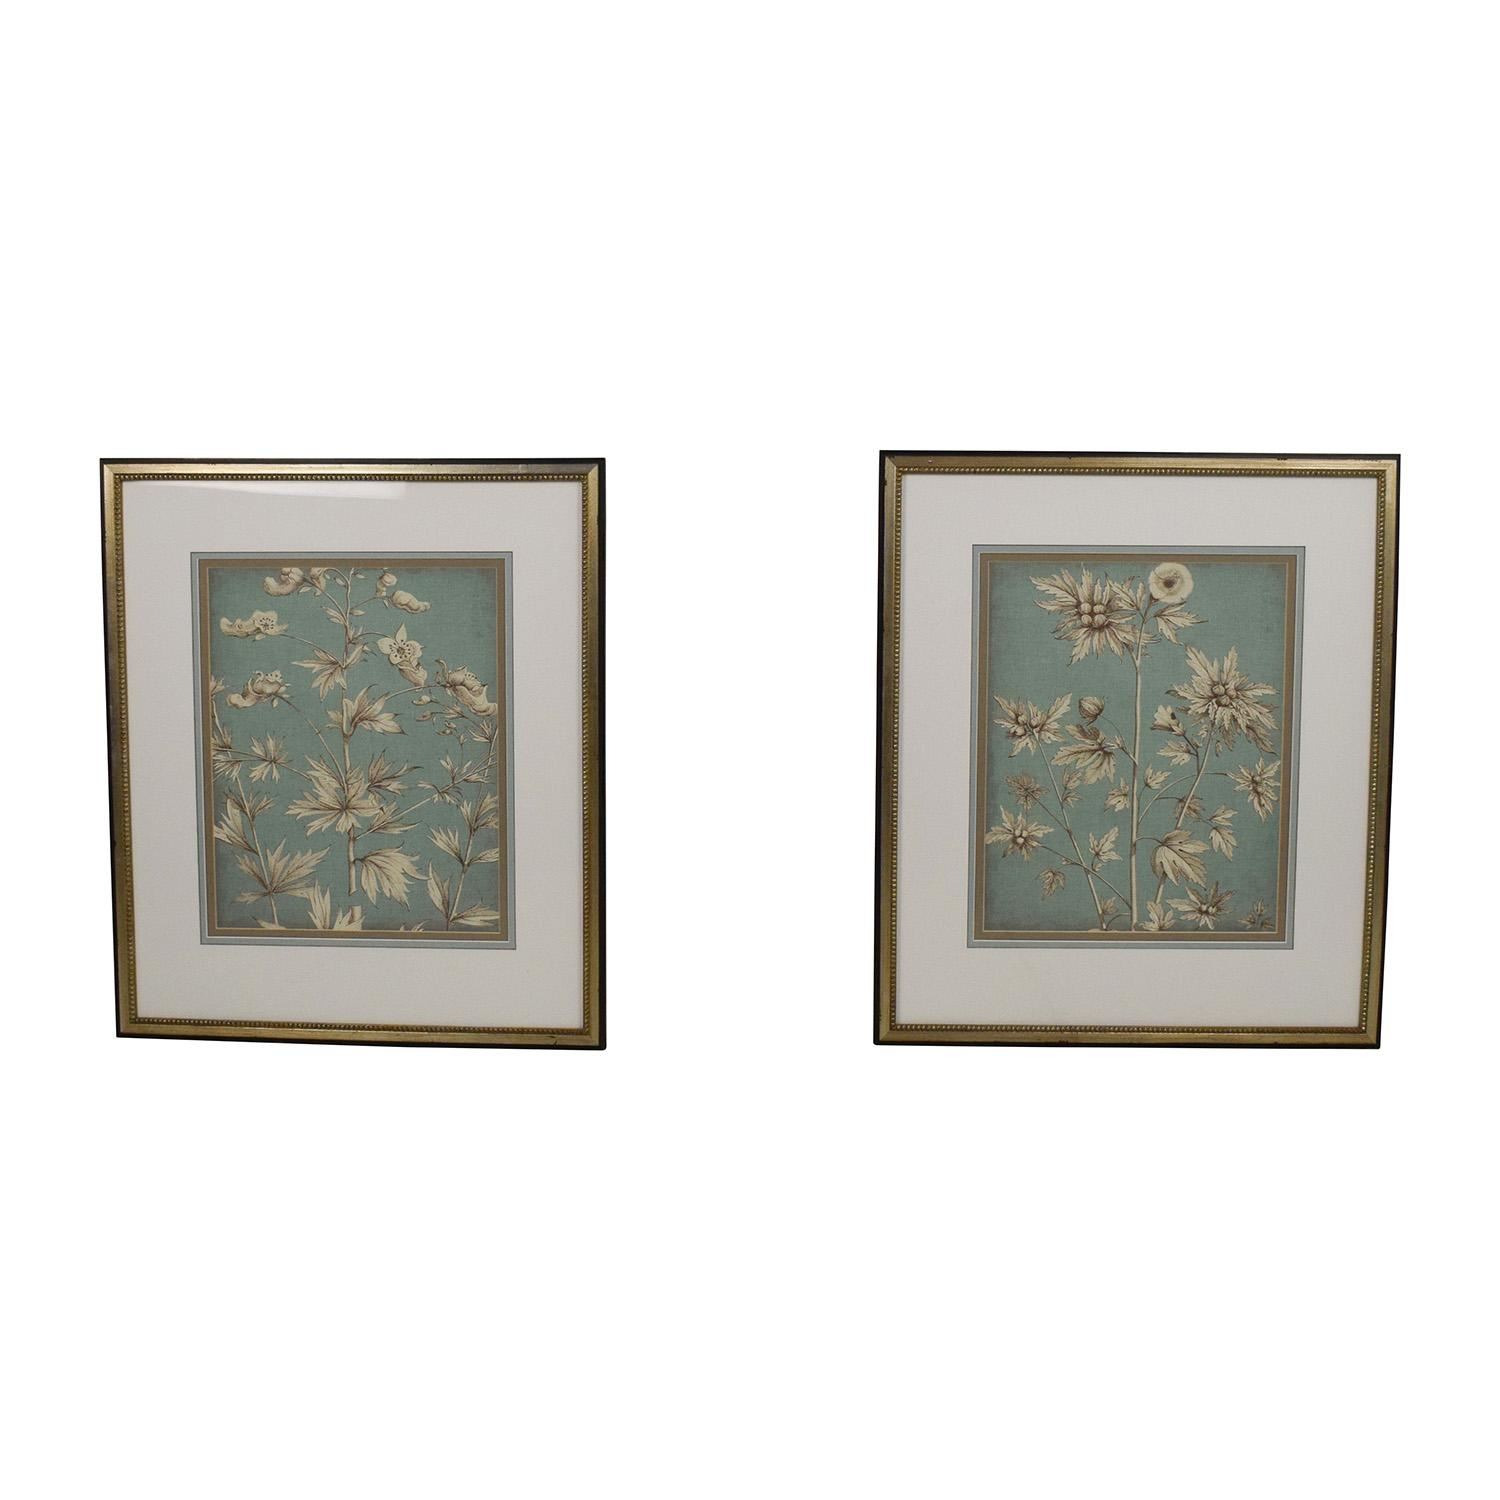 32% Off – Framed Switzerland Church Bridge Needlepoint / Decor In Ethan Allen Wall Art (View 10 of 20)